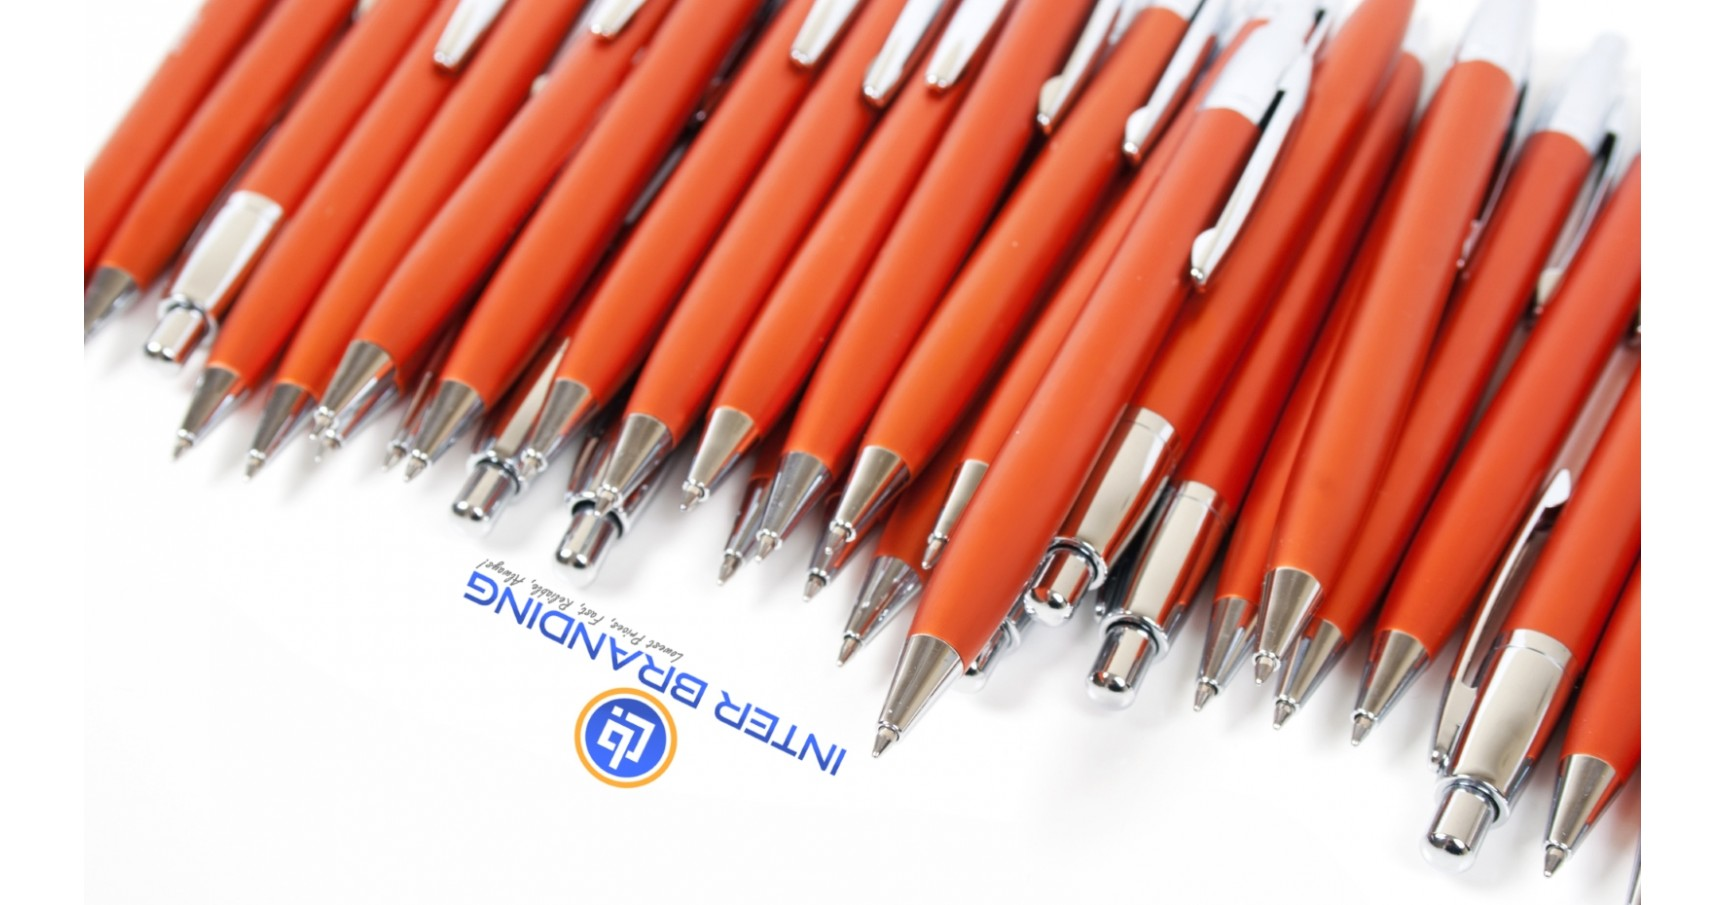 5 Creative Ways to Use Promo Pens to Drive More Sales